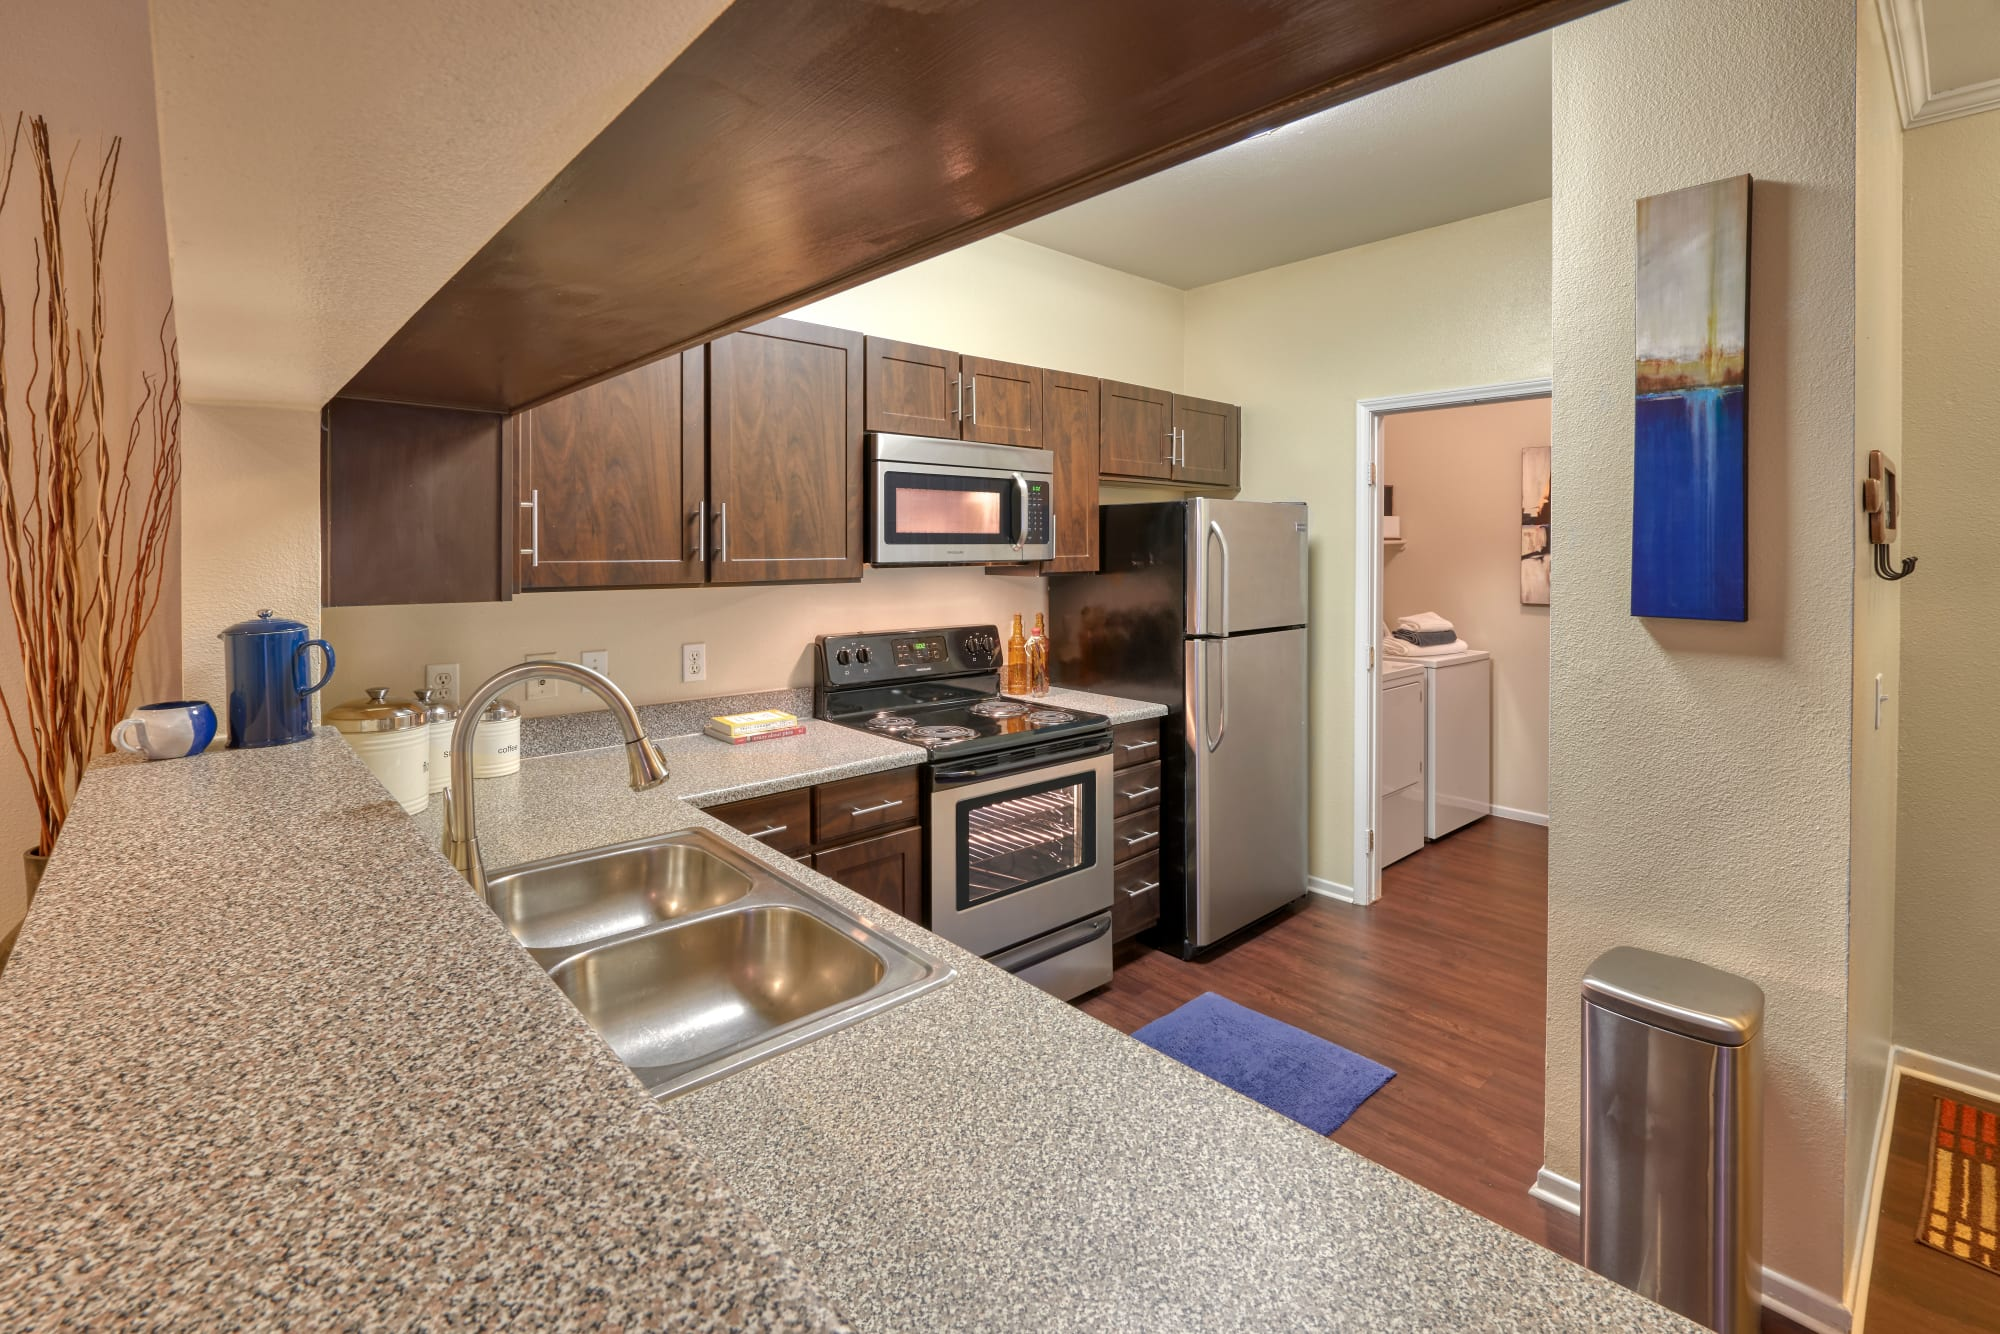 Espresso-colored cabinetry and granite countertops on display in this kitchen at Hawthorne Hill Apartments in Thornton, Colorado